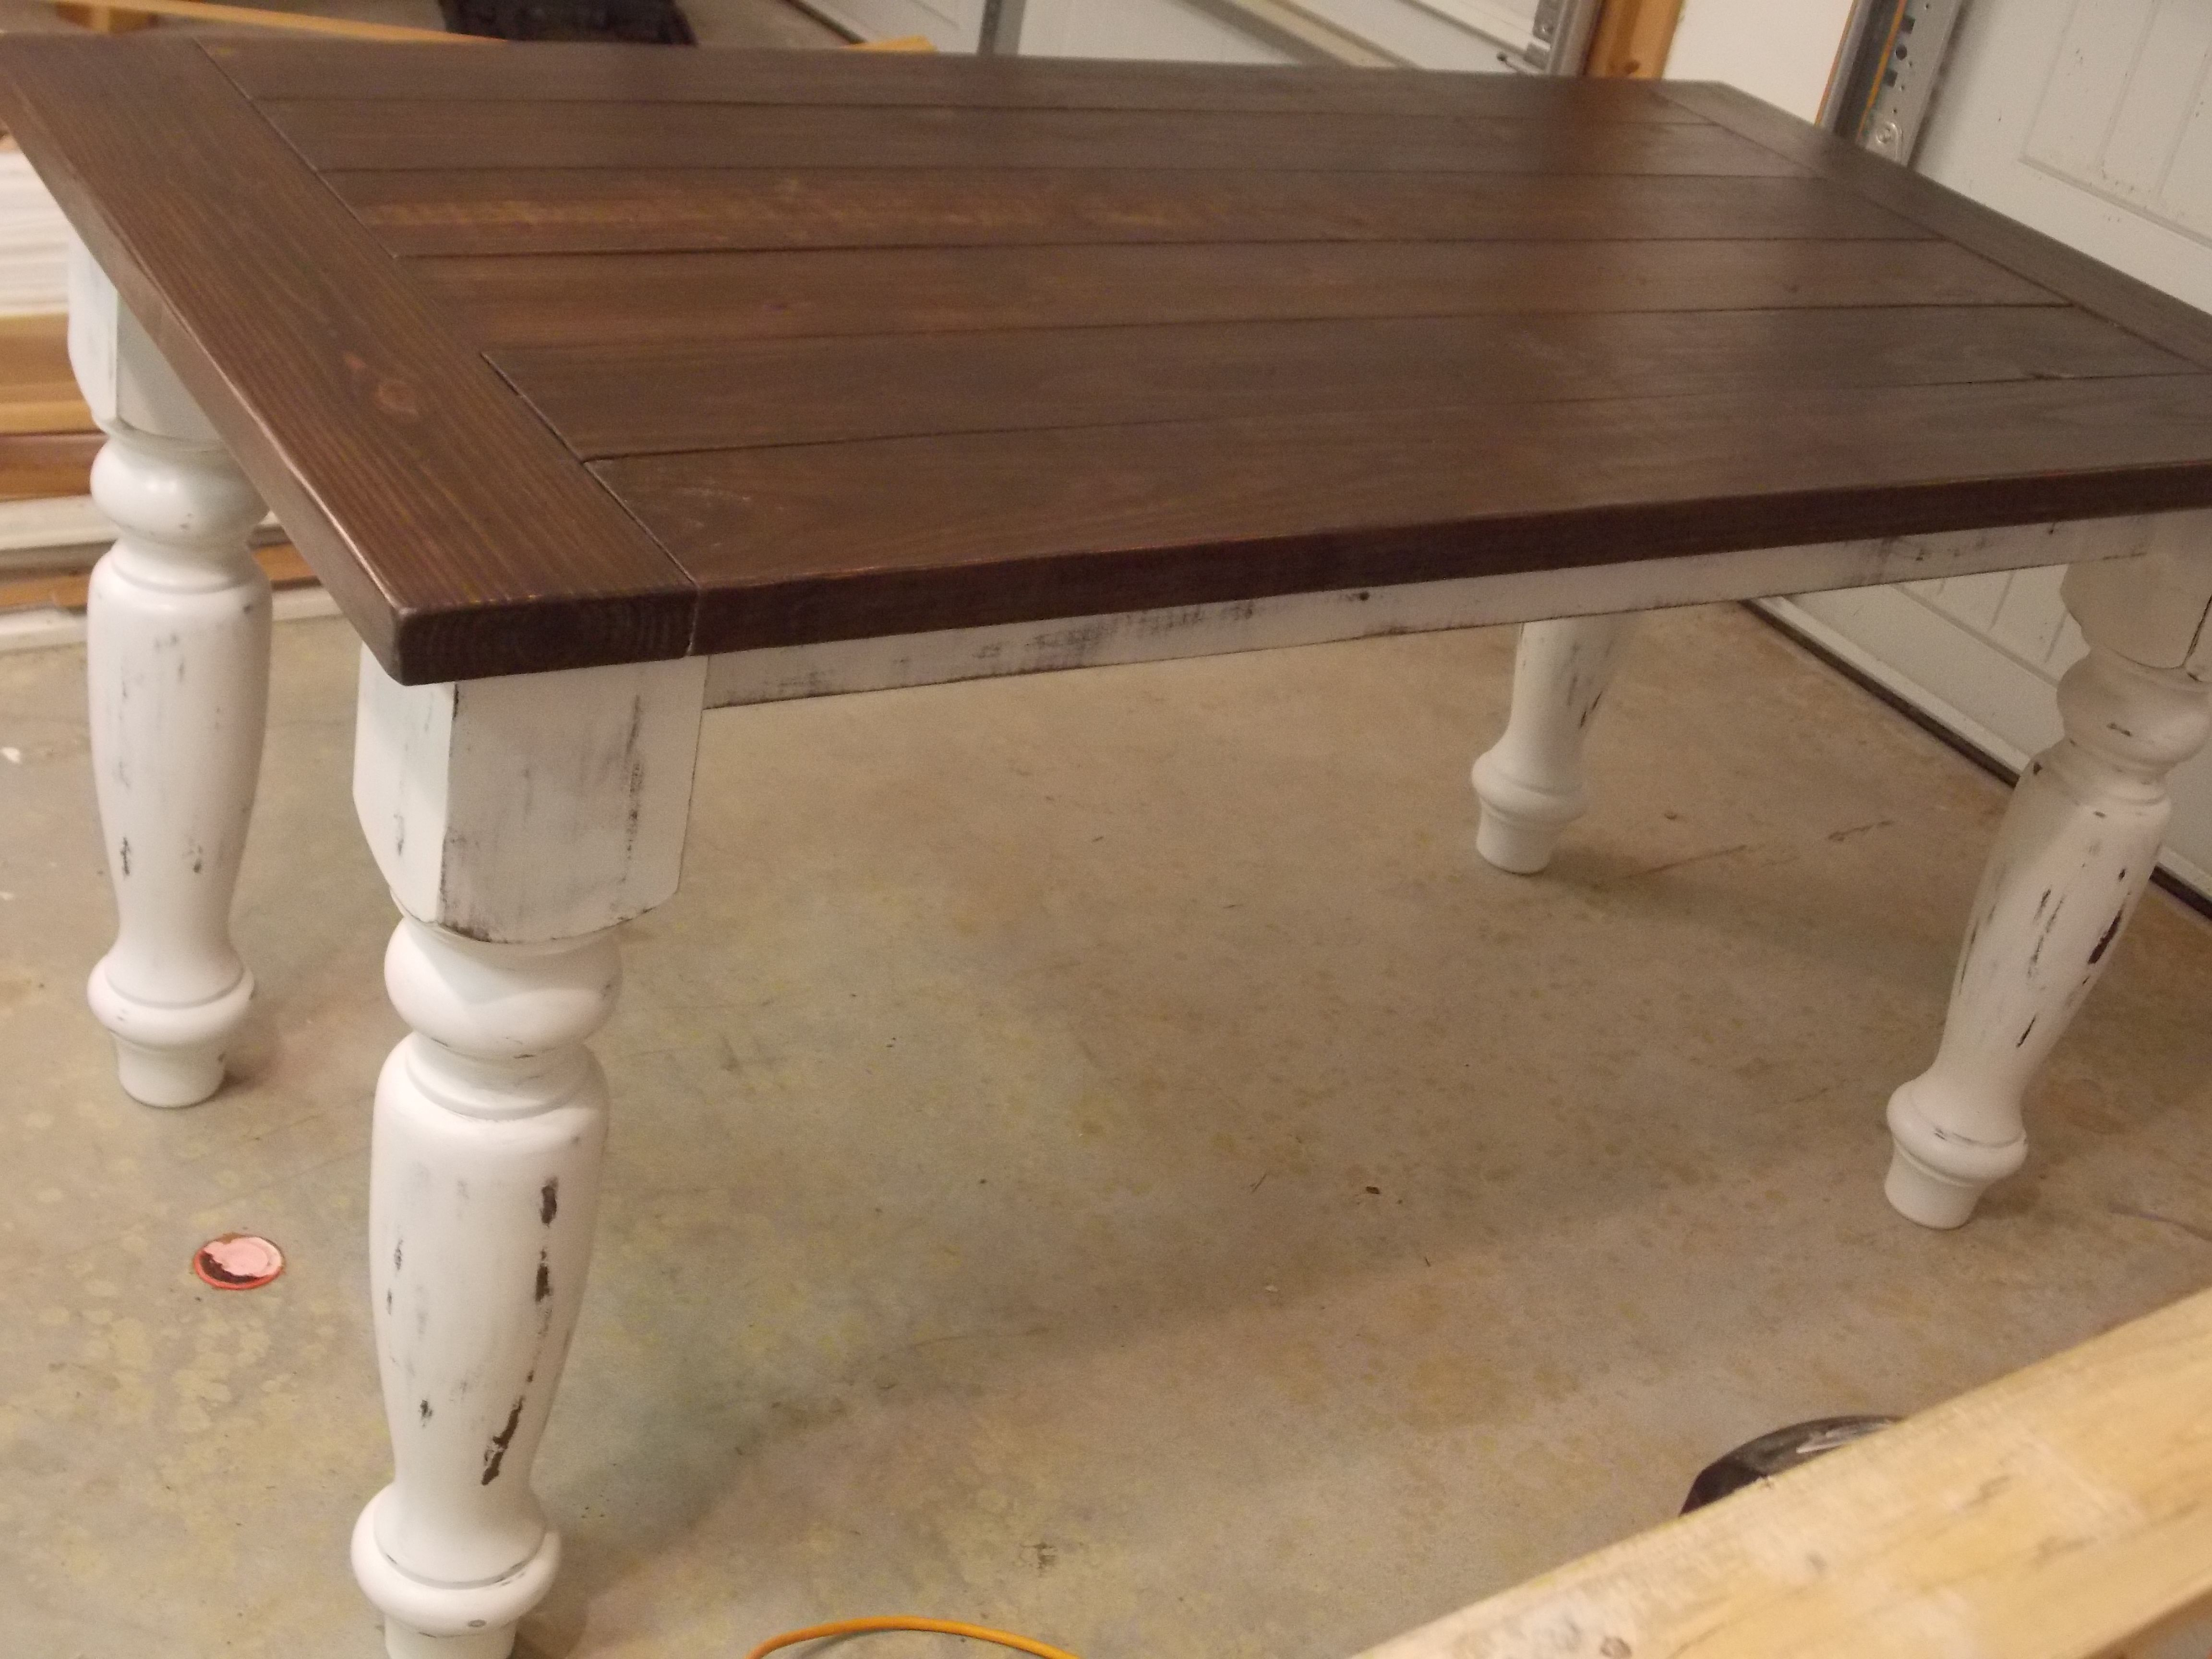 diy dining room table legs. turned leg farmhouse table | do it yourself home projects from ana white diy dining room table legs d